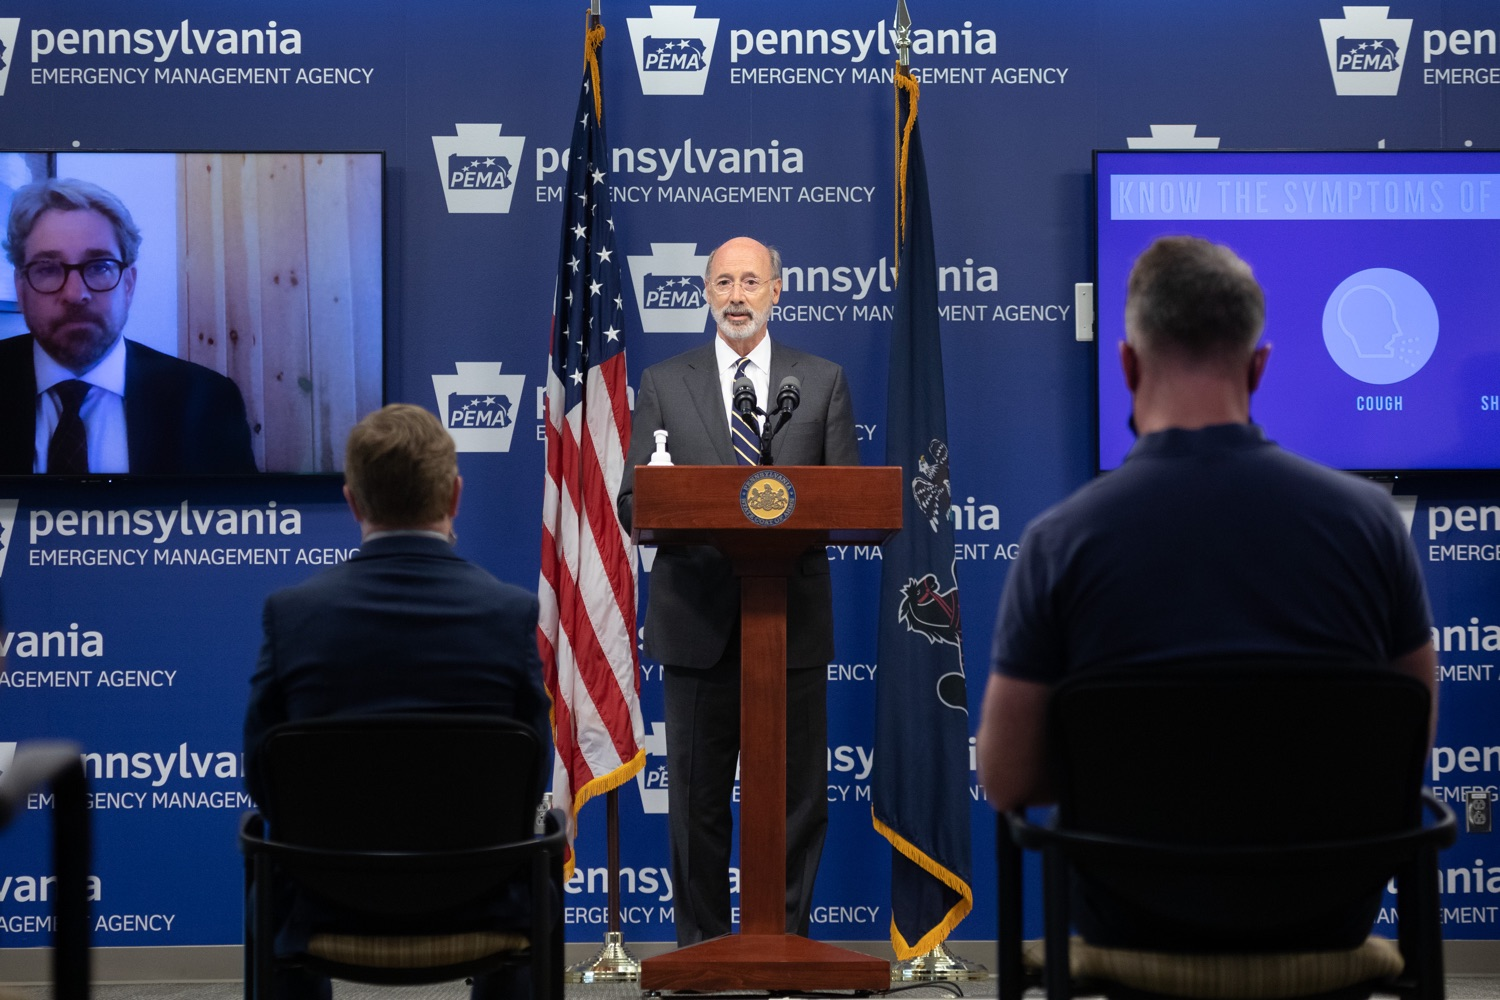 """<a href=""""https://filesource.wostreaming.net/commonwealthofpa/photo/18165_GOV_covid_mitigation_dz_10.jpg"""" target=""""_blank"""">⇣Download Photo<br></a>Pennsylvania Governor Tom Wolf speaking with the press. Governor Tom Wolf and Sec. of Health Dr. Rachel Levine today signed new orders for targeted mitigation efforts in response to the recent rise in COVID cases, primarily in southwest Pennsylvania, but also in other counties in the state, influencing the decision for statewide mitigation efforts for bars and restaurants, gatherings and telework. The new orders take effect at 12:01 a.m., Thursday, July 16, 2020.  Harrisburg, - July 15, 2020"""